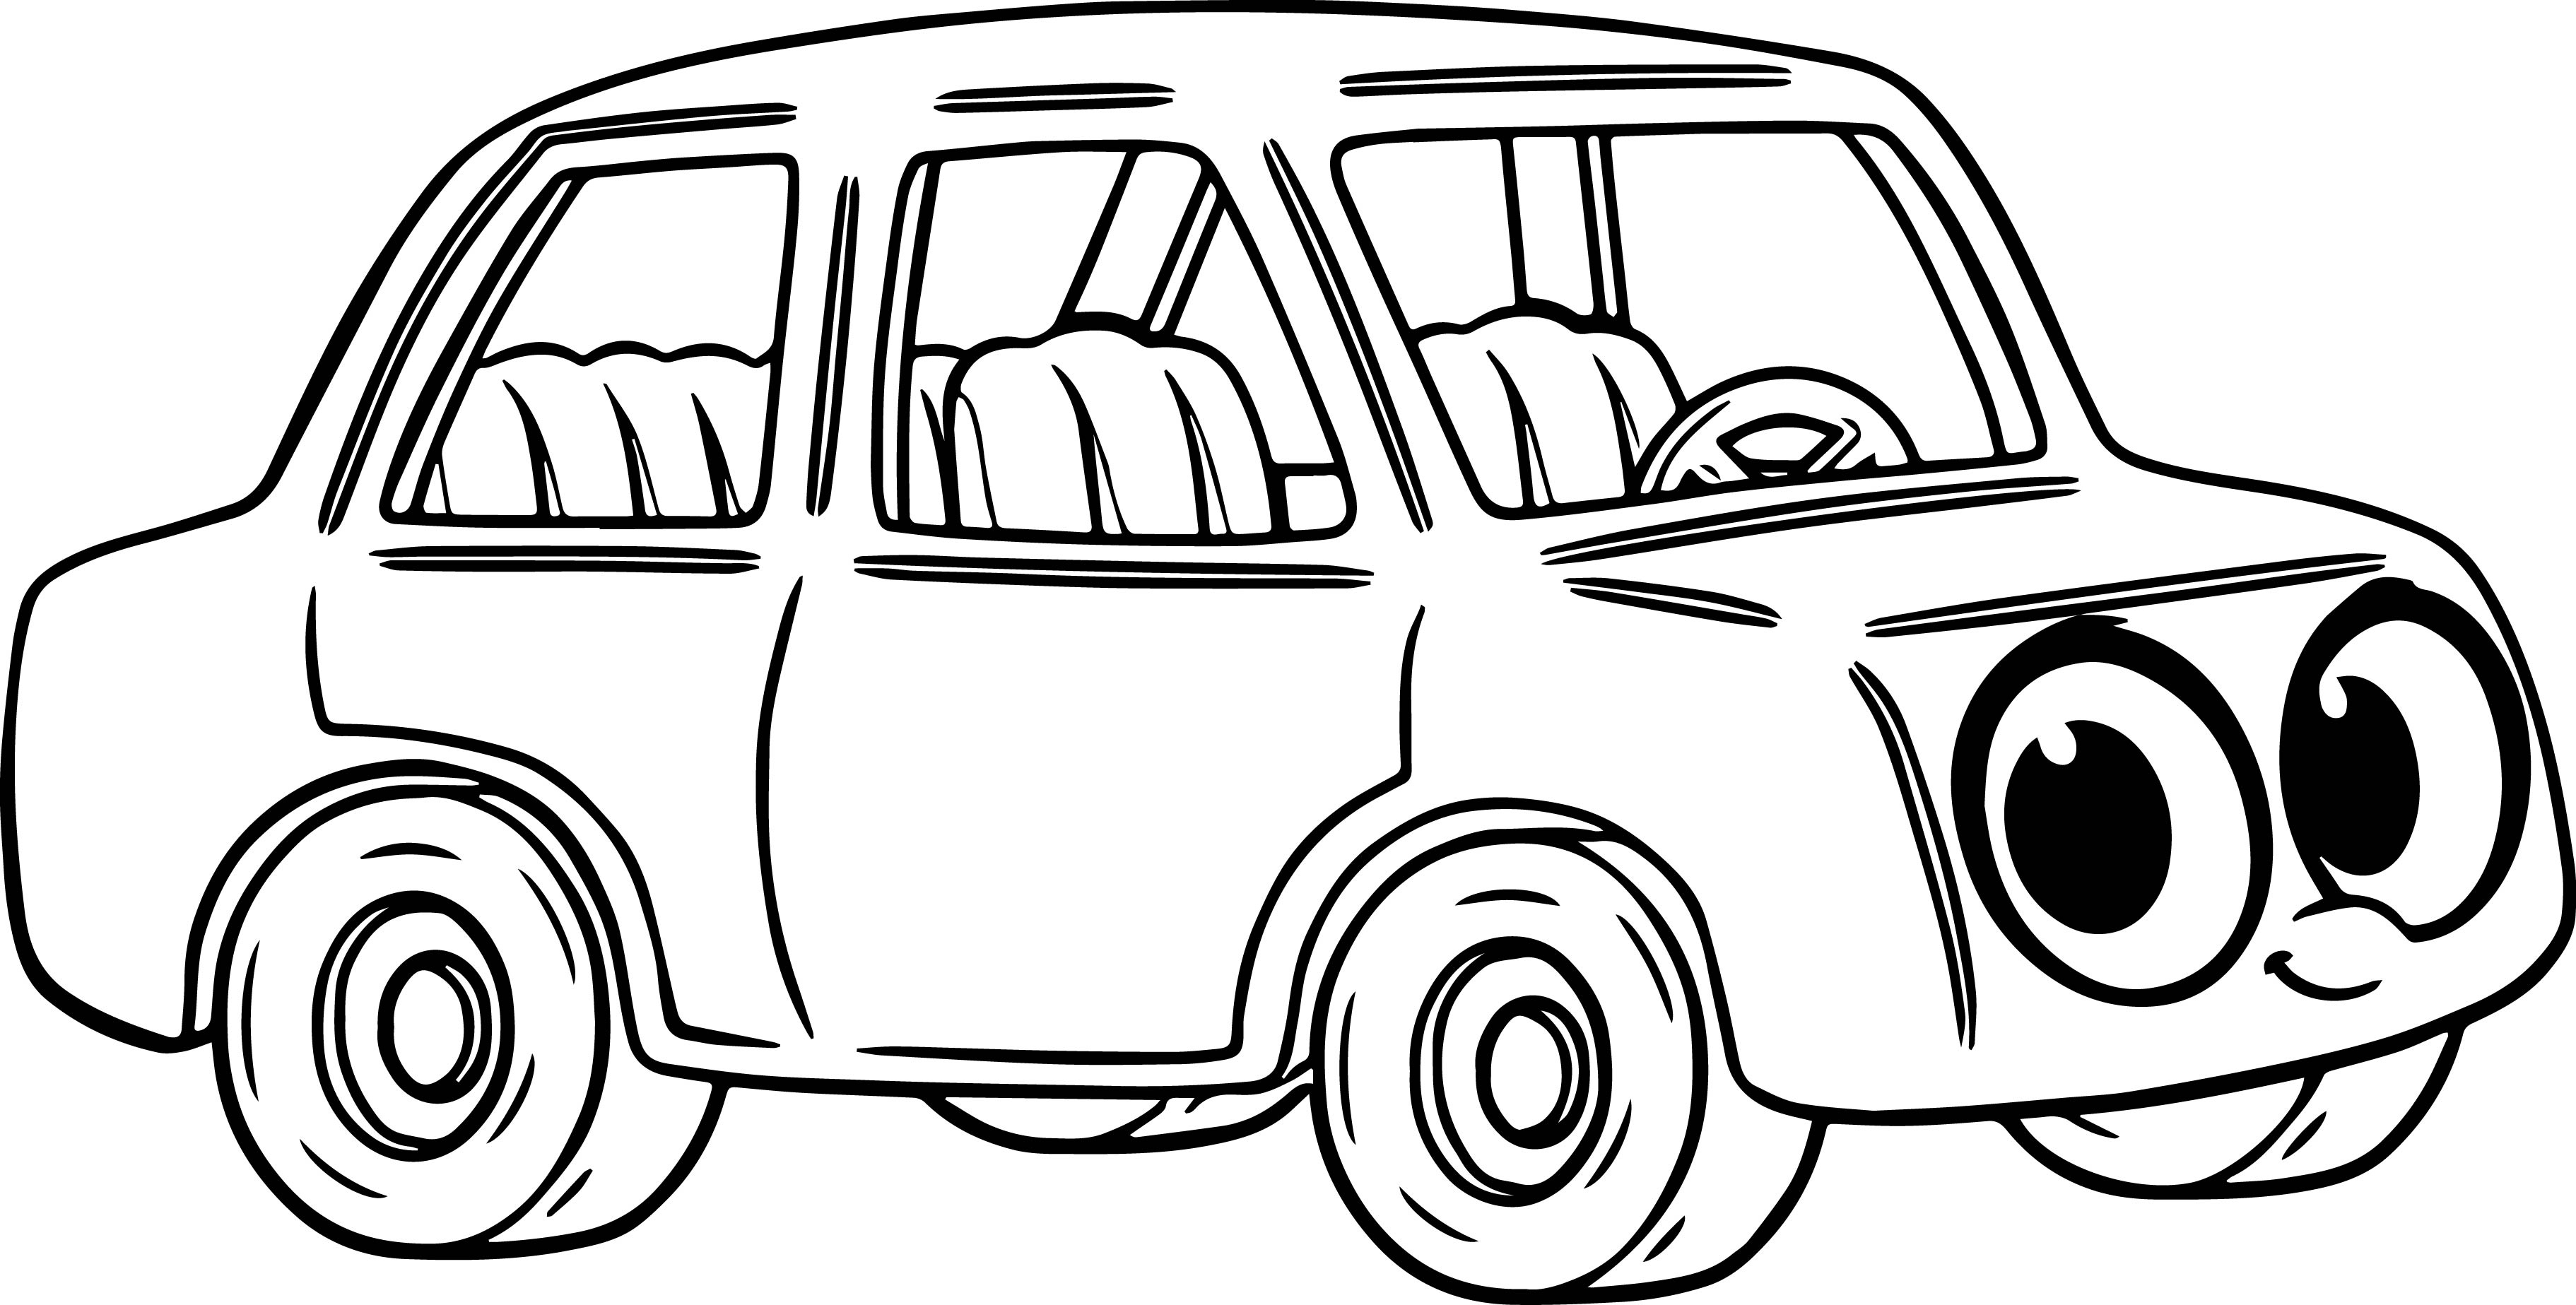 3645x1847 Car Coloring Pages New Flying Car Cartoon Coloring Sheet Coloring